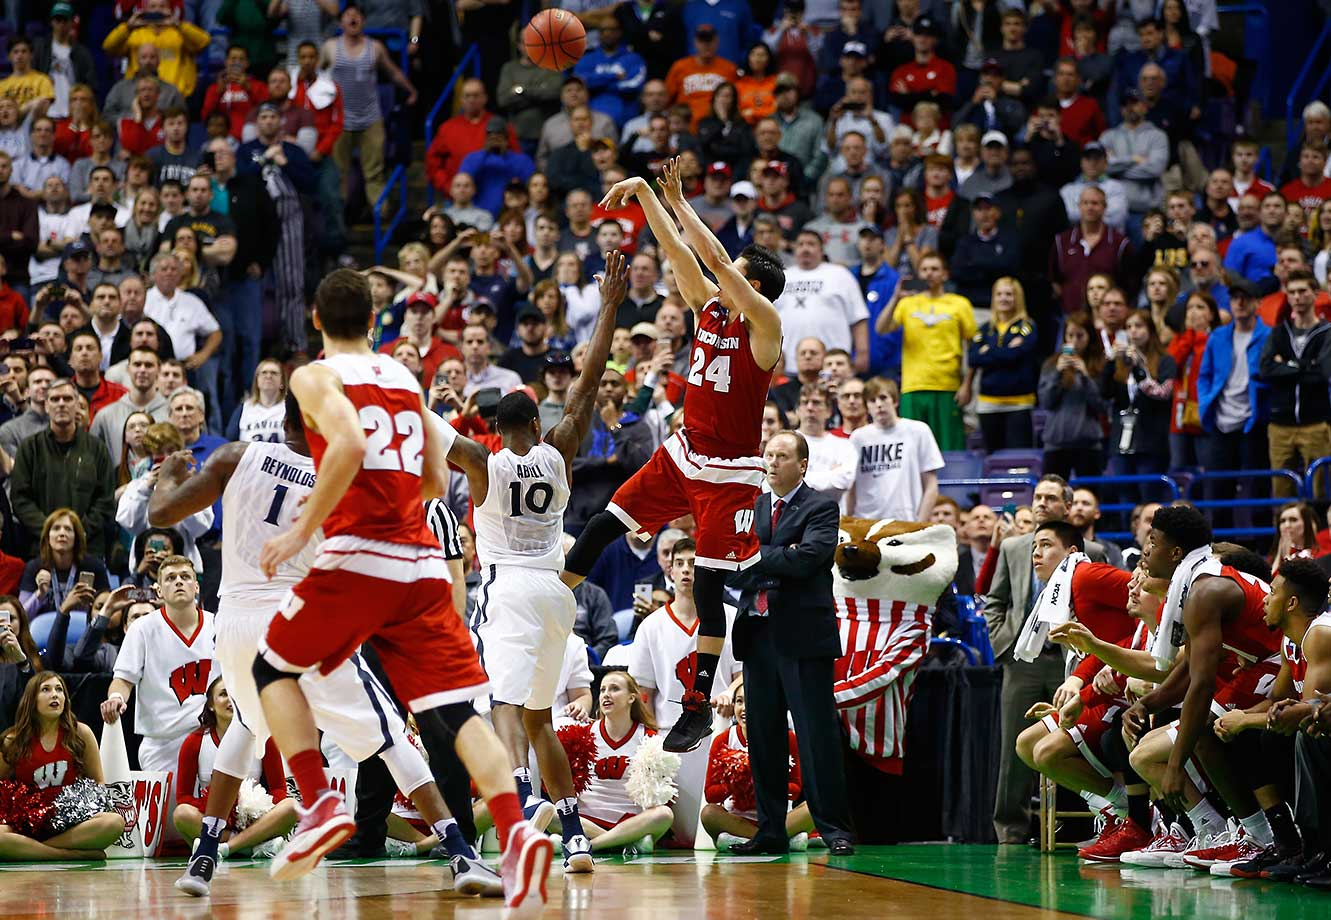 Bronson Koenig of the Wisconsin Badgers shoots the game-winning basket as time expires to defeat two-seed Xavier 66-63.